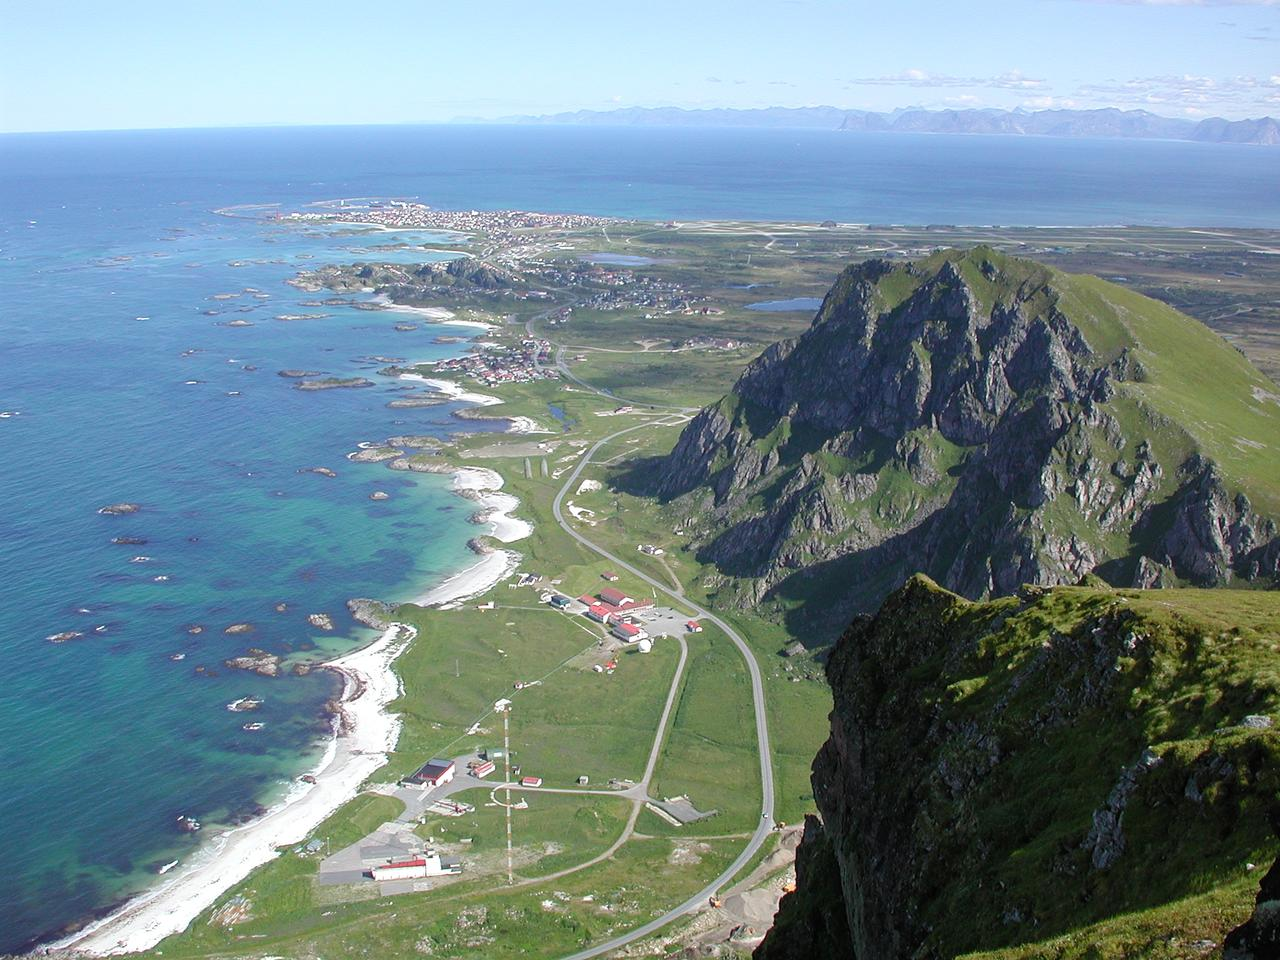 The Andøya Rocket Range, where Scramspace will be launched